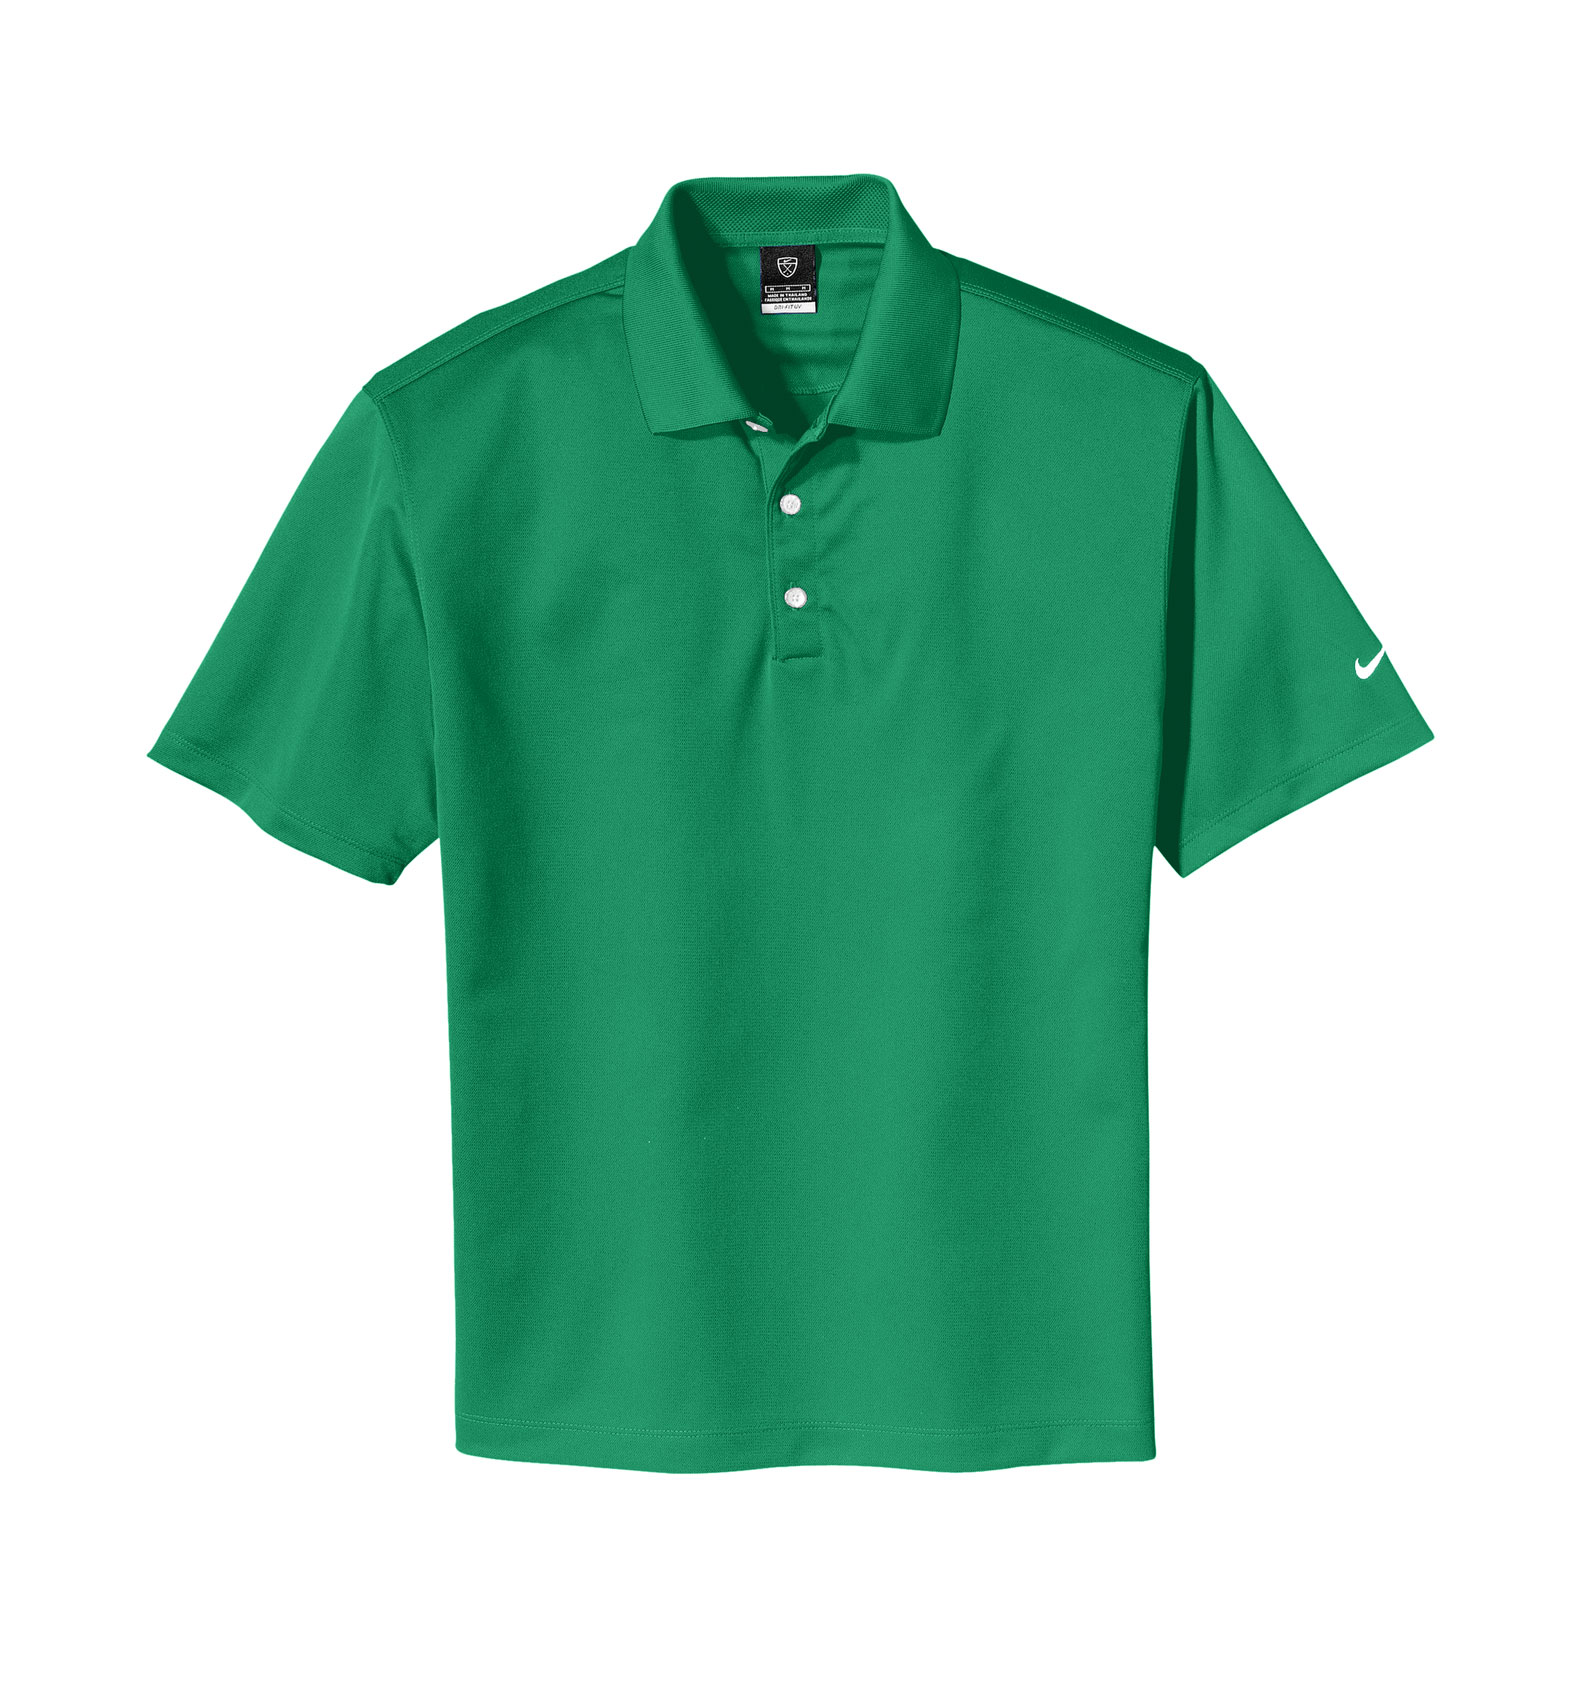 Nike Golf Mens Tech Dri-Fit Polo